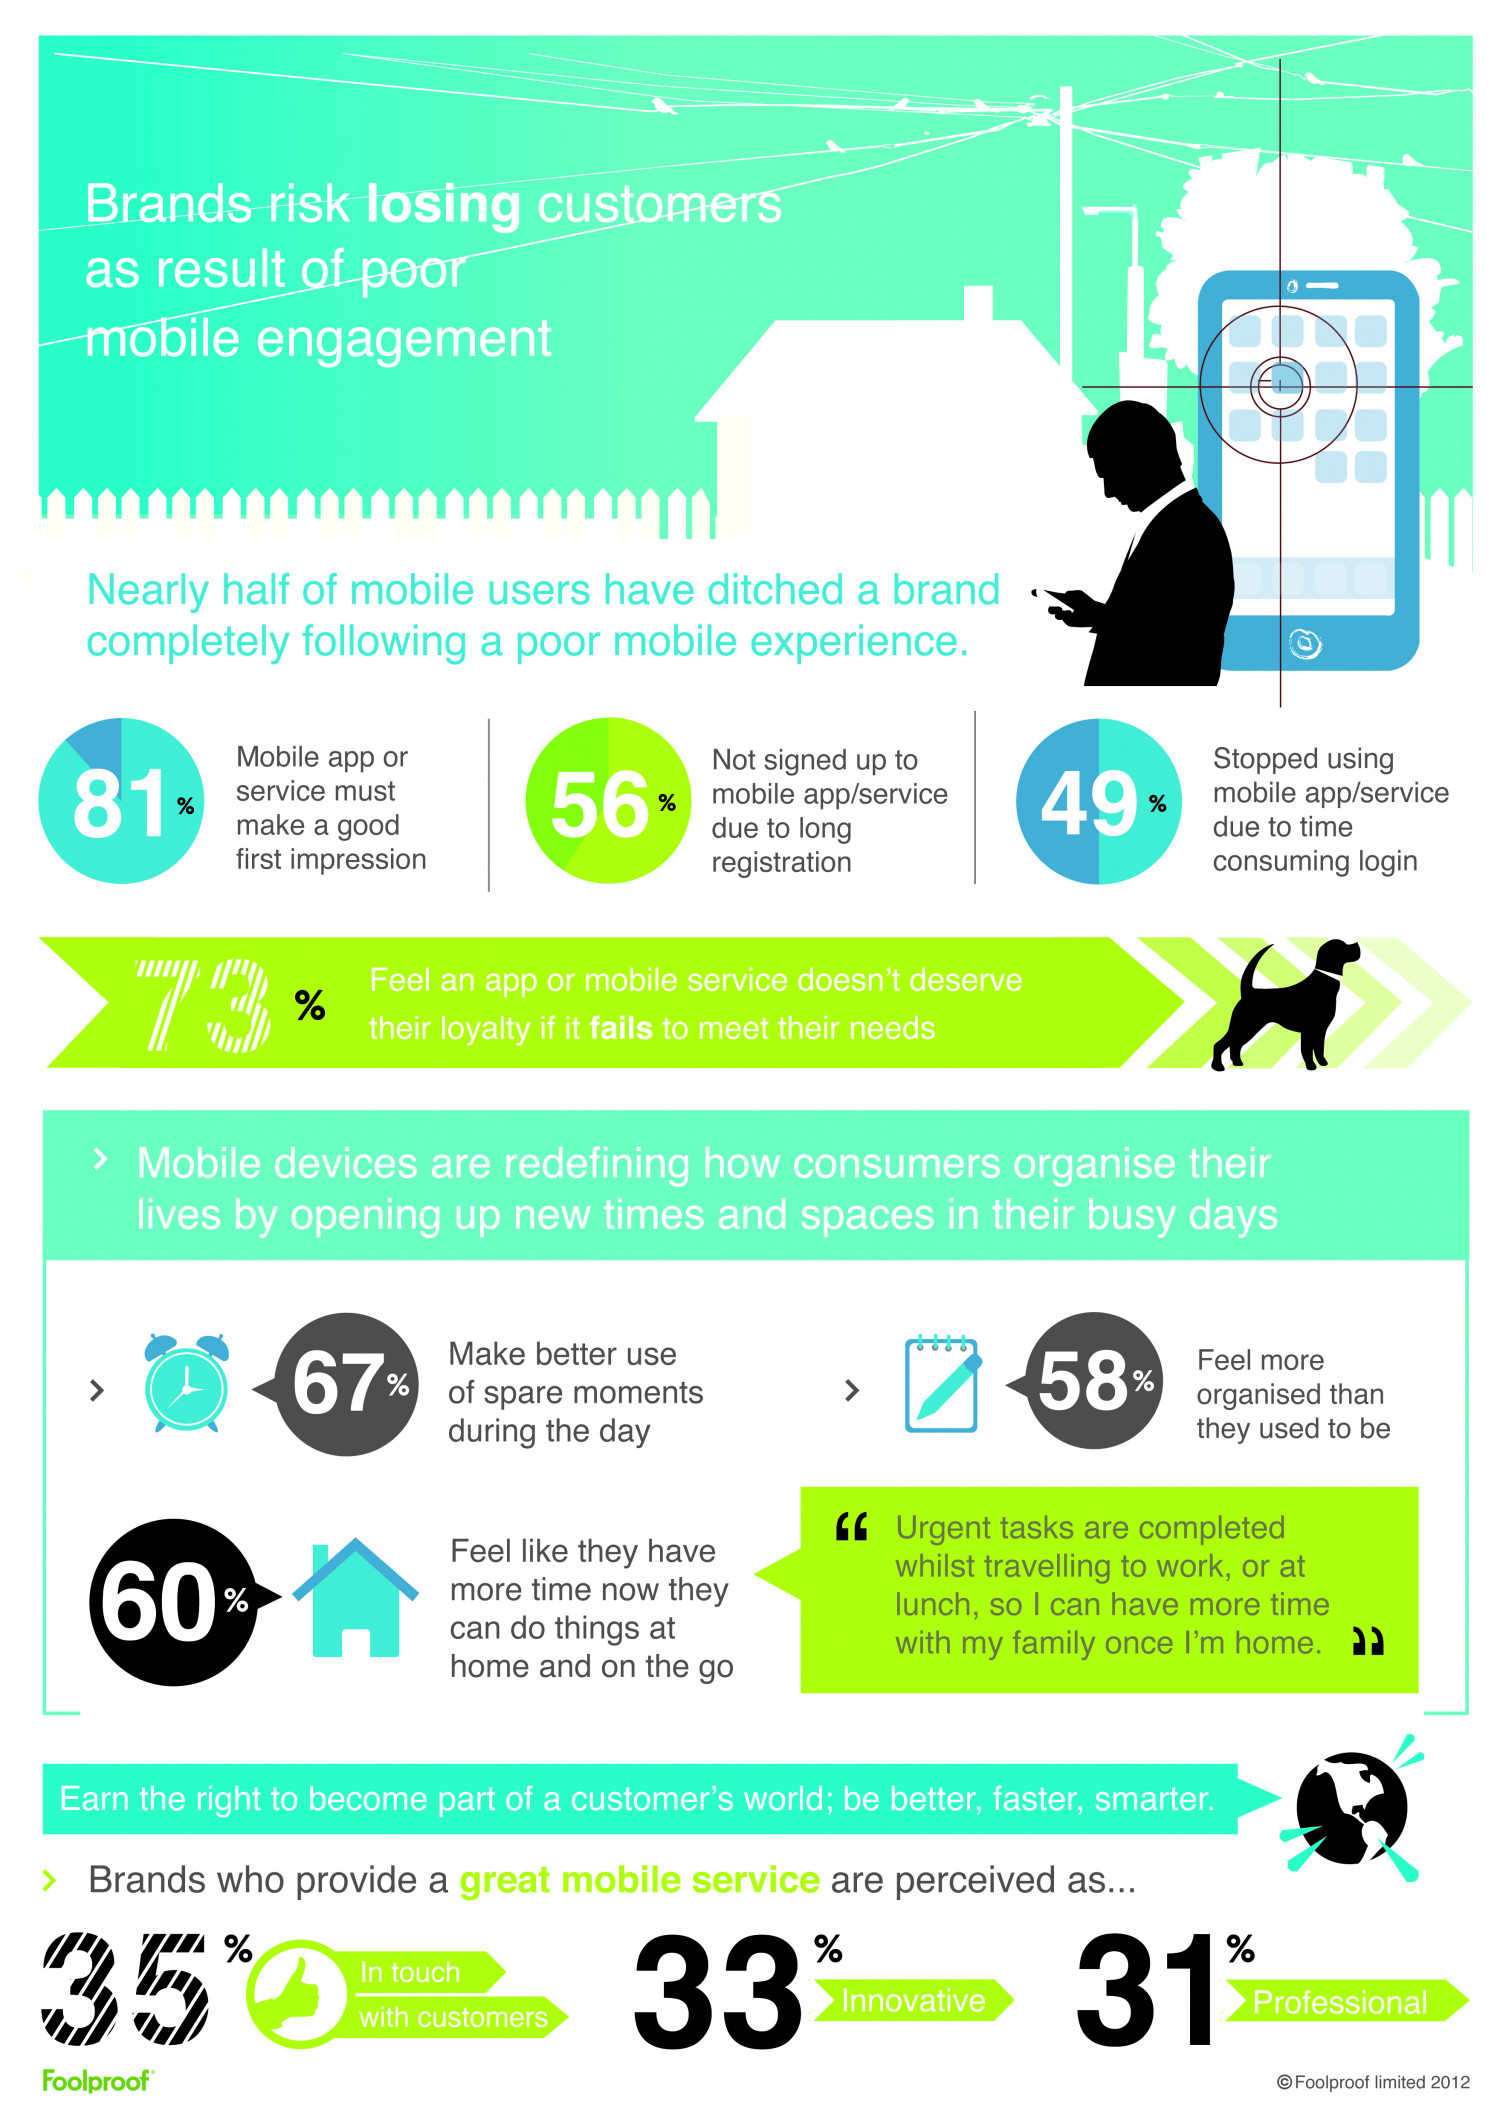 Brands risk losing customers as result of poor mobile engagement Infographic